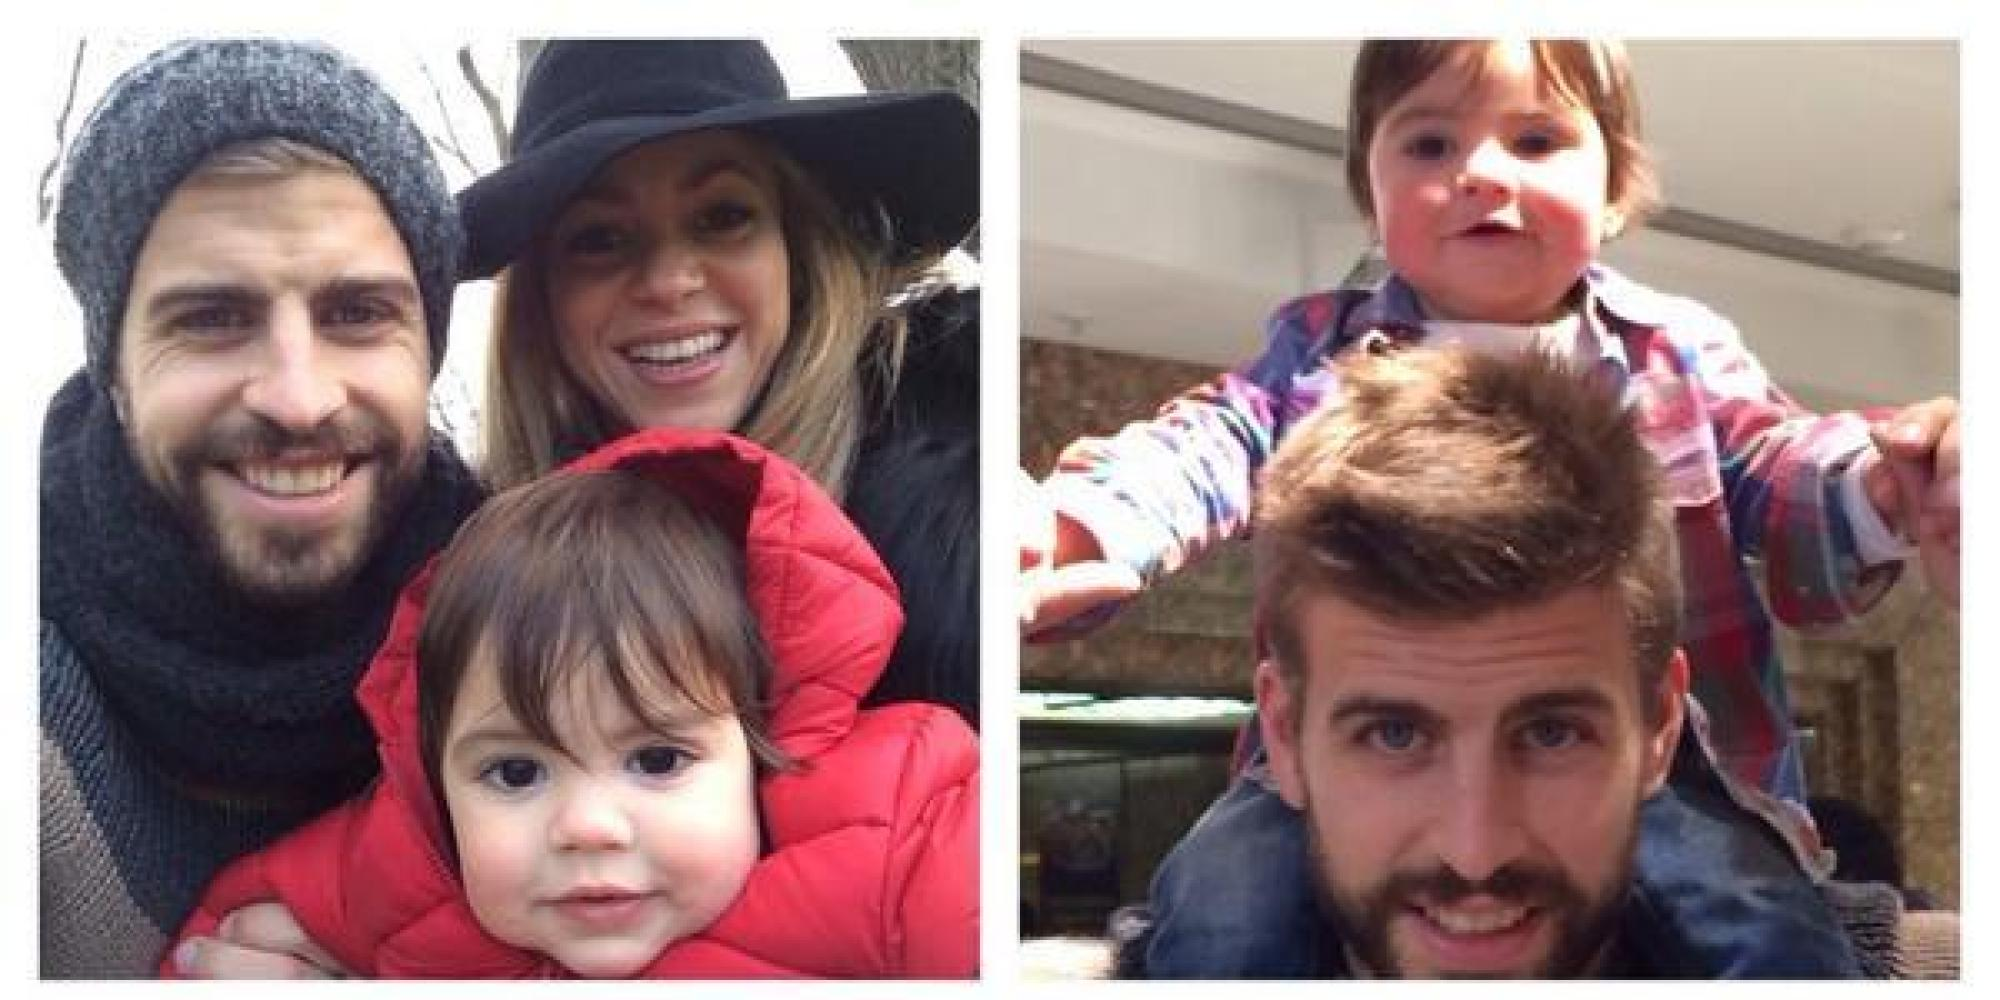 Gerard Pique and Shakira kissed in public when they attended match ...